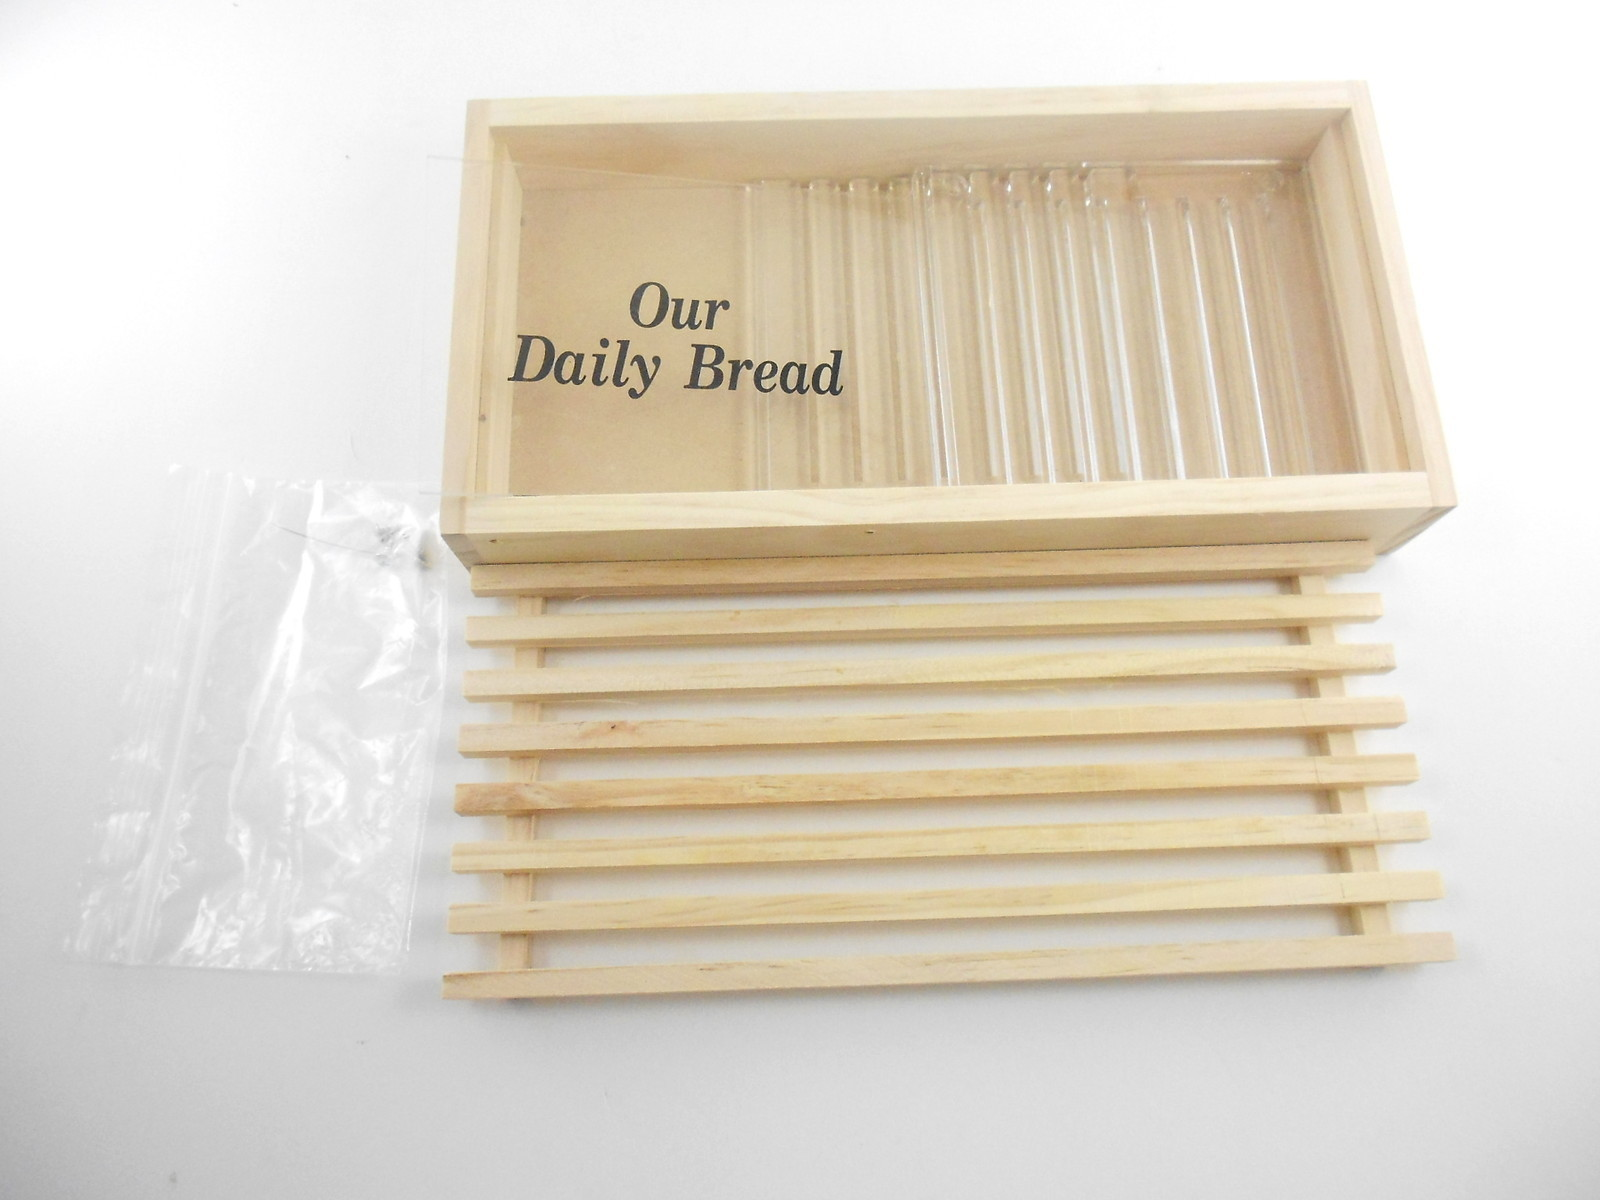 Bamboo Bread Slicer Guide With Crumb Catcher | M&W ...